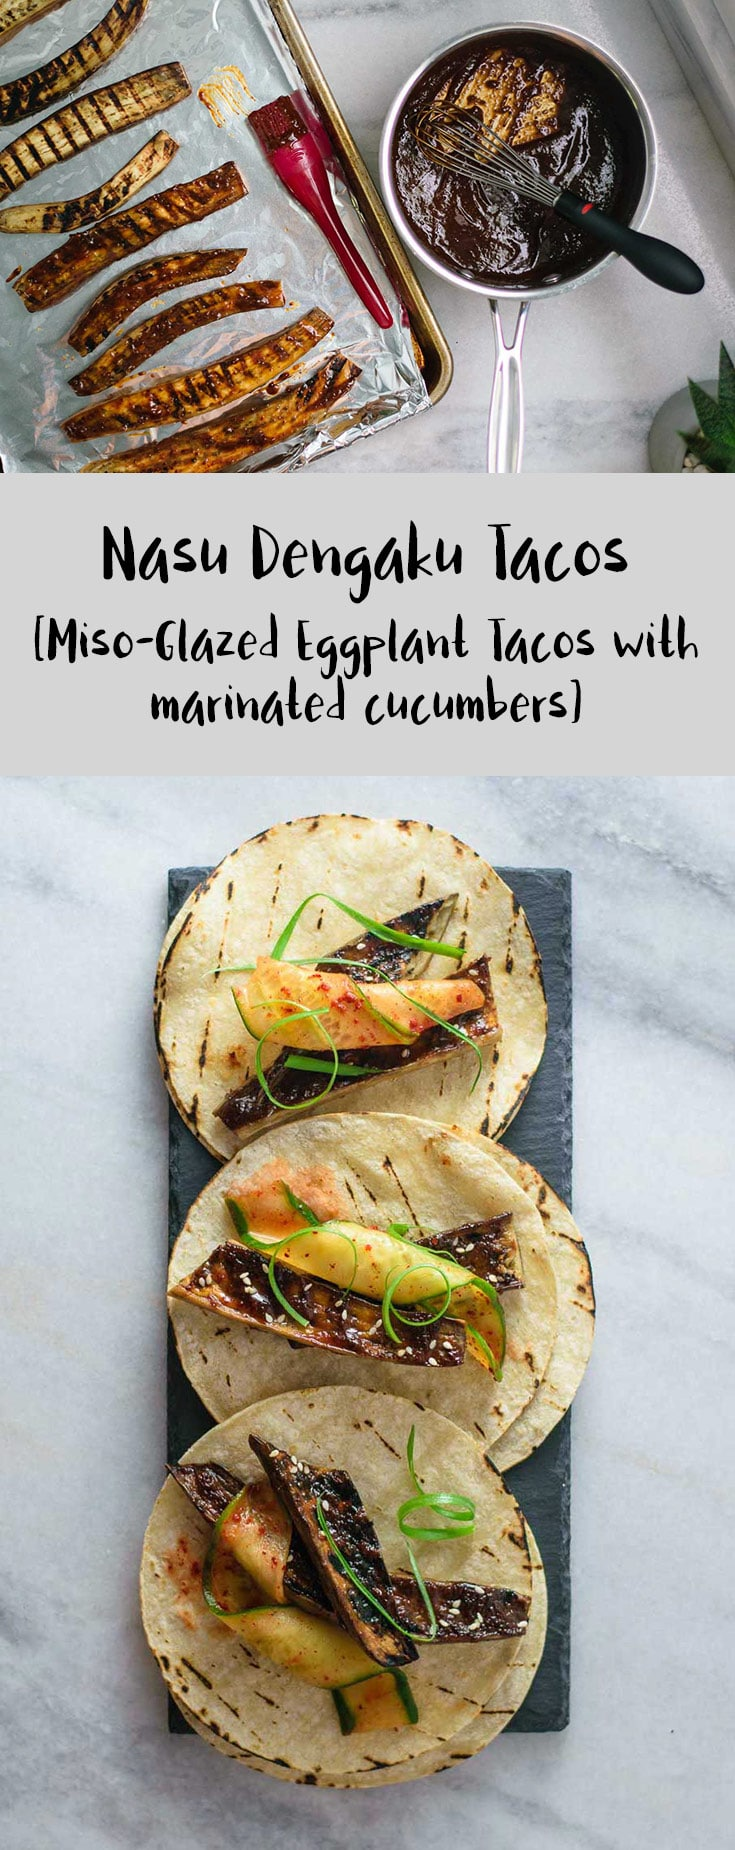 Miso Glazed Eggplant Tacos | Traditional Japanese miso glazed eggplant (nasu dengaku) are stuffed into corn tortillas, along with crisp chili marinated cucumber for a delicious and fun meal. This 30 minute meal is vegan and gluten free. | thecuriouschickpea.com #vegan #Japanese #tacos